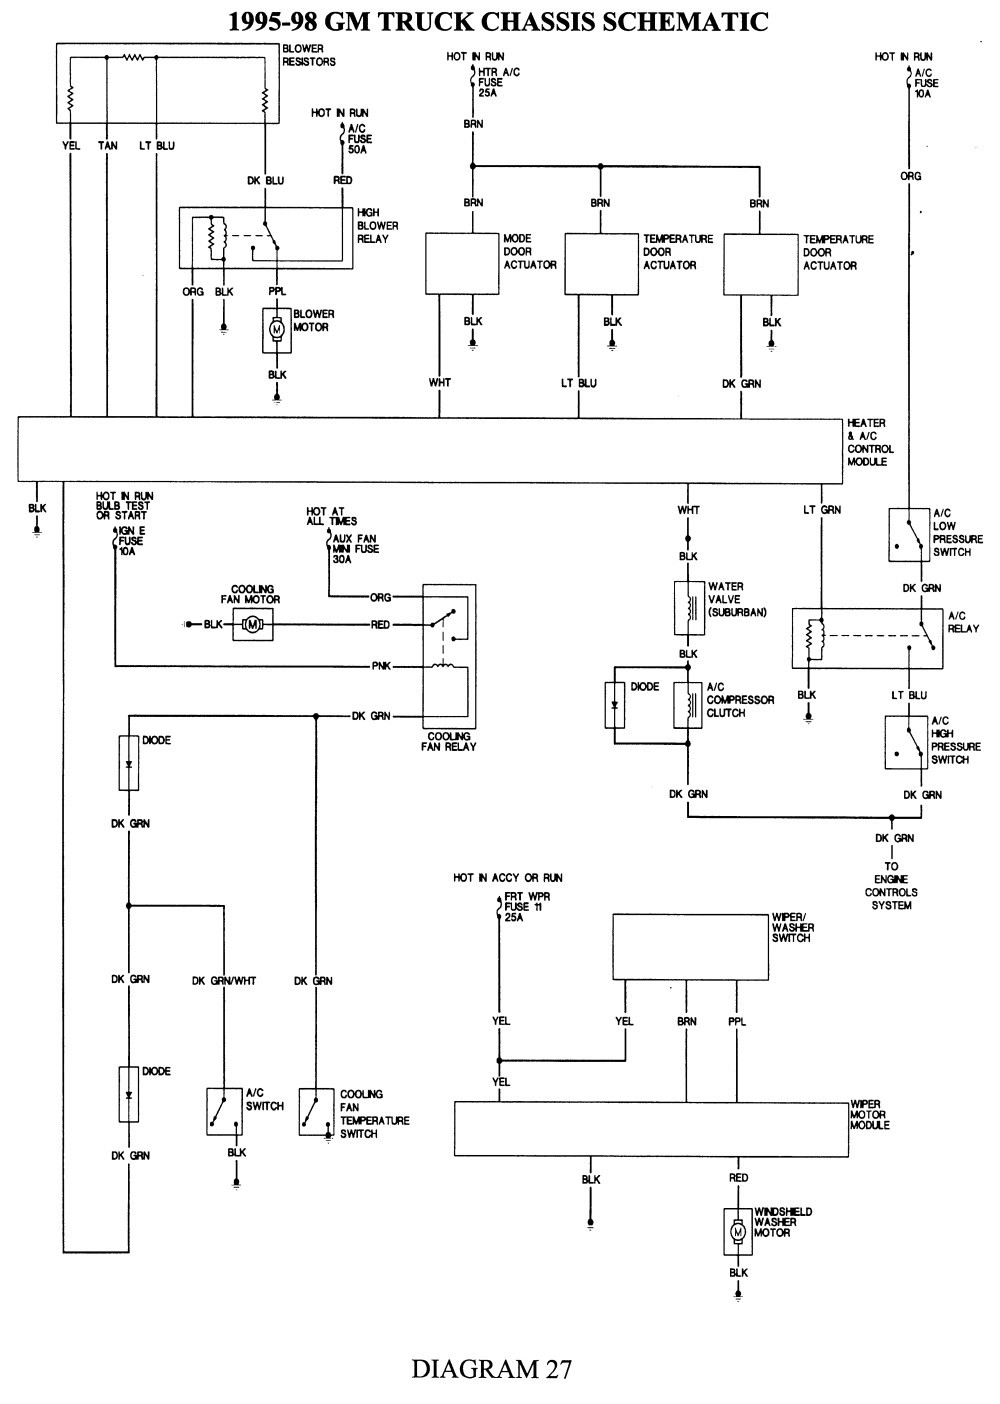 2006 Silverado Blower Resistor Wiring Diagram Library Durango Free Picture Repair Guides Diagrams Autozone Throughout 2004 Chevy Motor